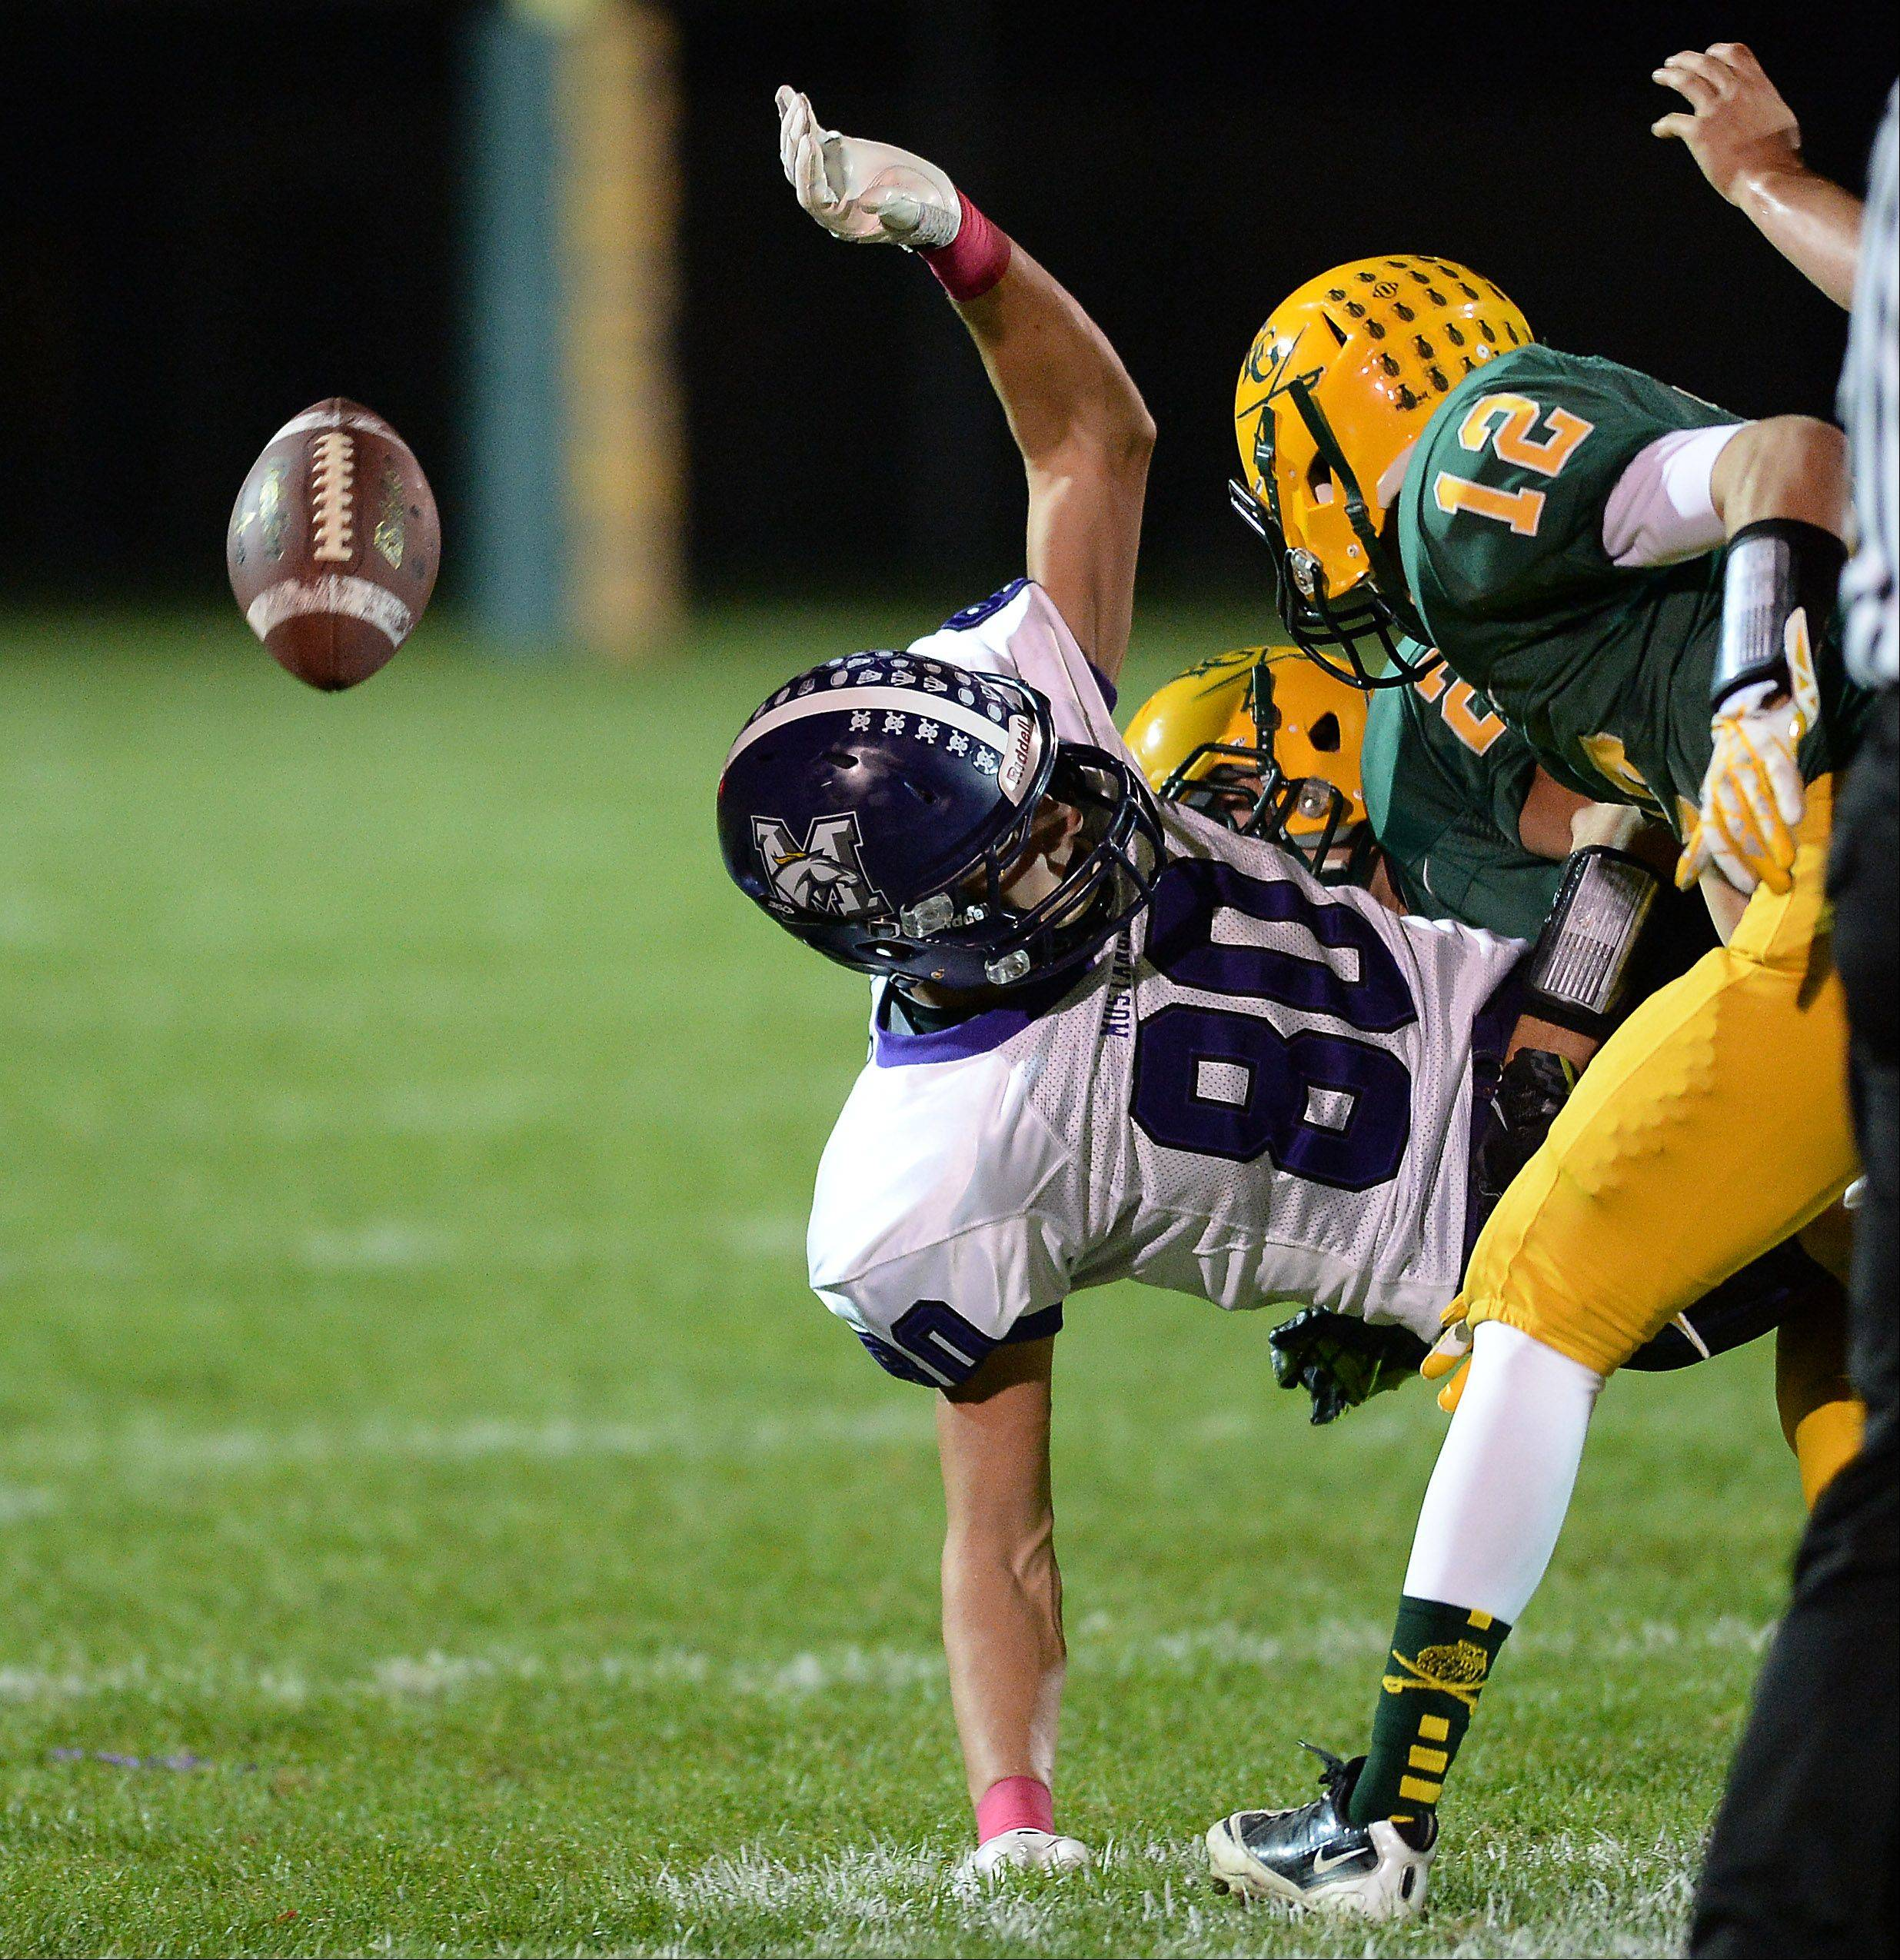 Rolling Meadows' Matt Dolan gets hit by Elk Grove's Matthew Wary causing a fumble during Friday's game in Elk Grove.